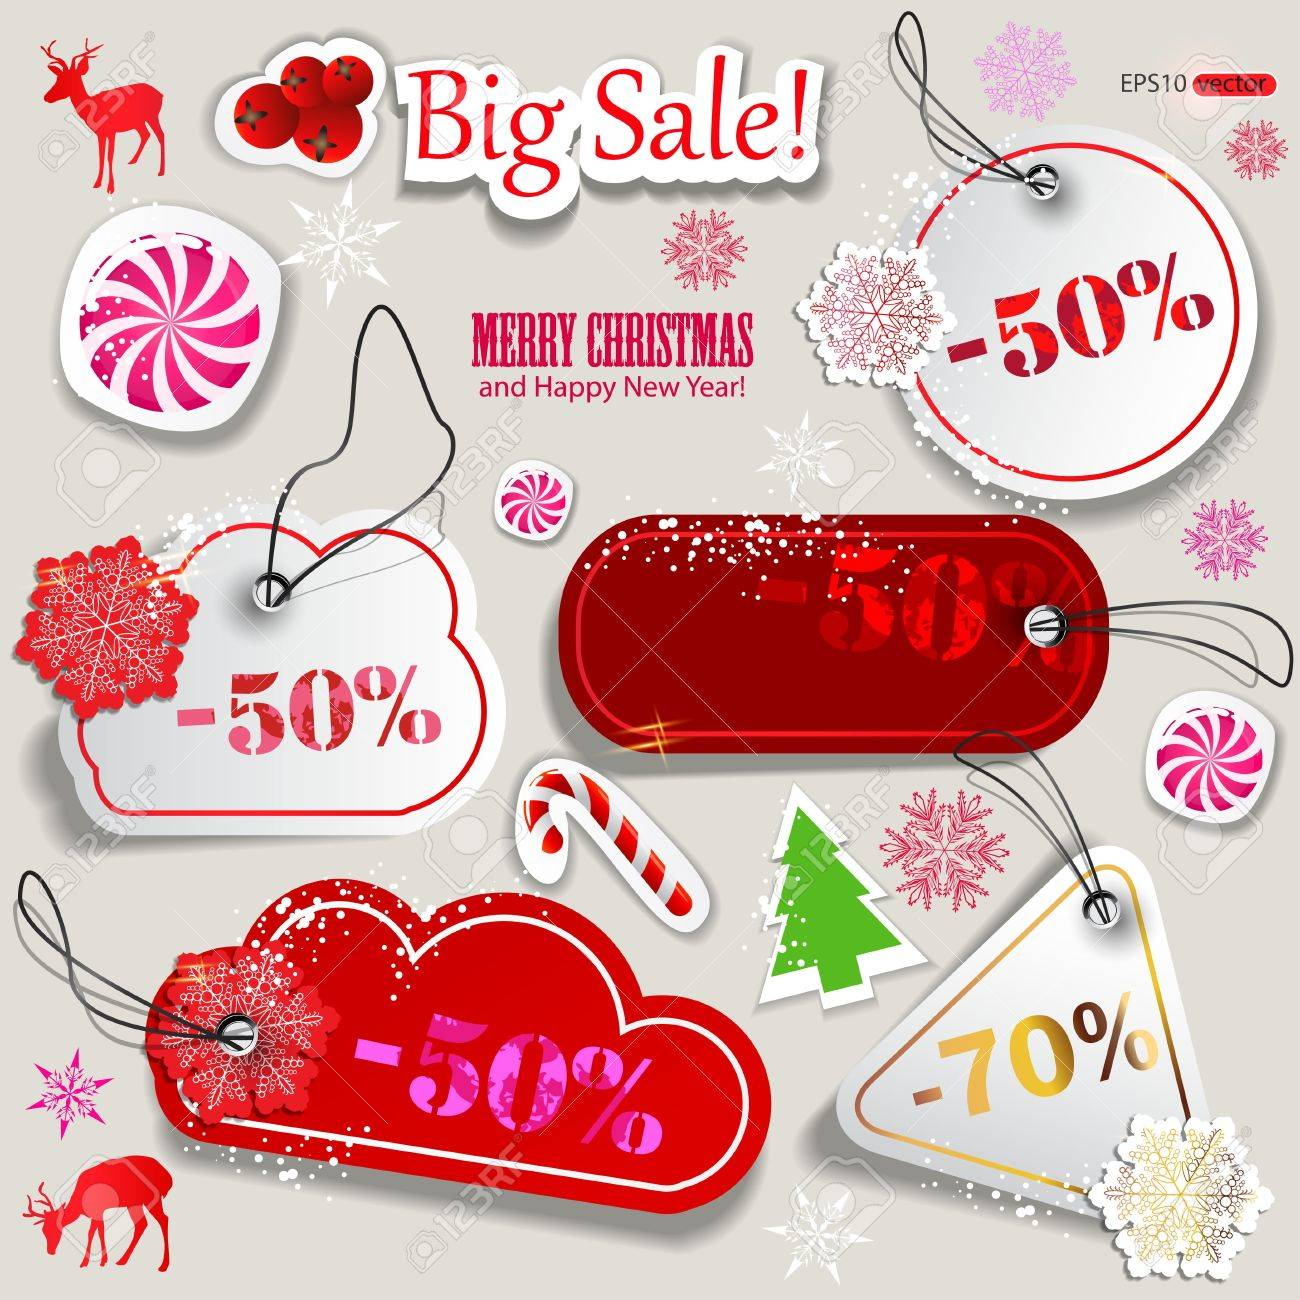 christmas paper discount coupons royalty cliparts christmas paper discount coupons stock vector 11655640